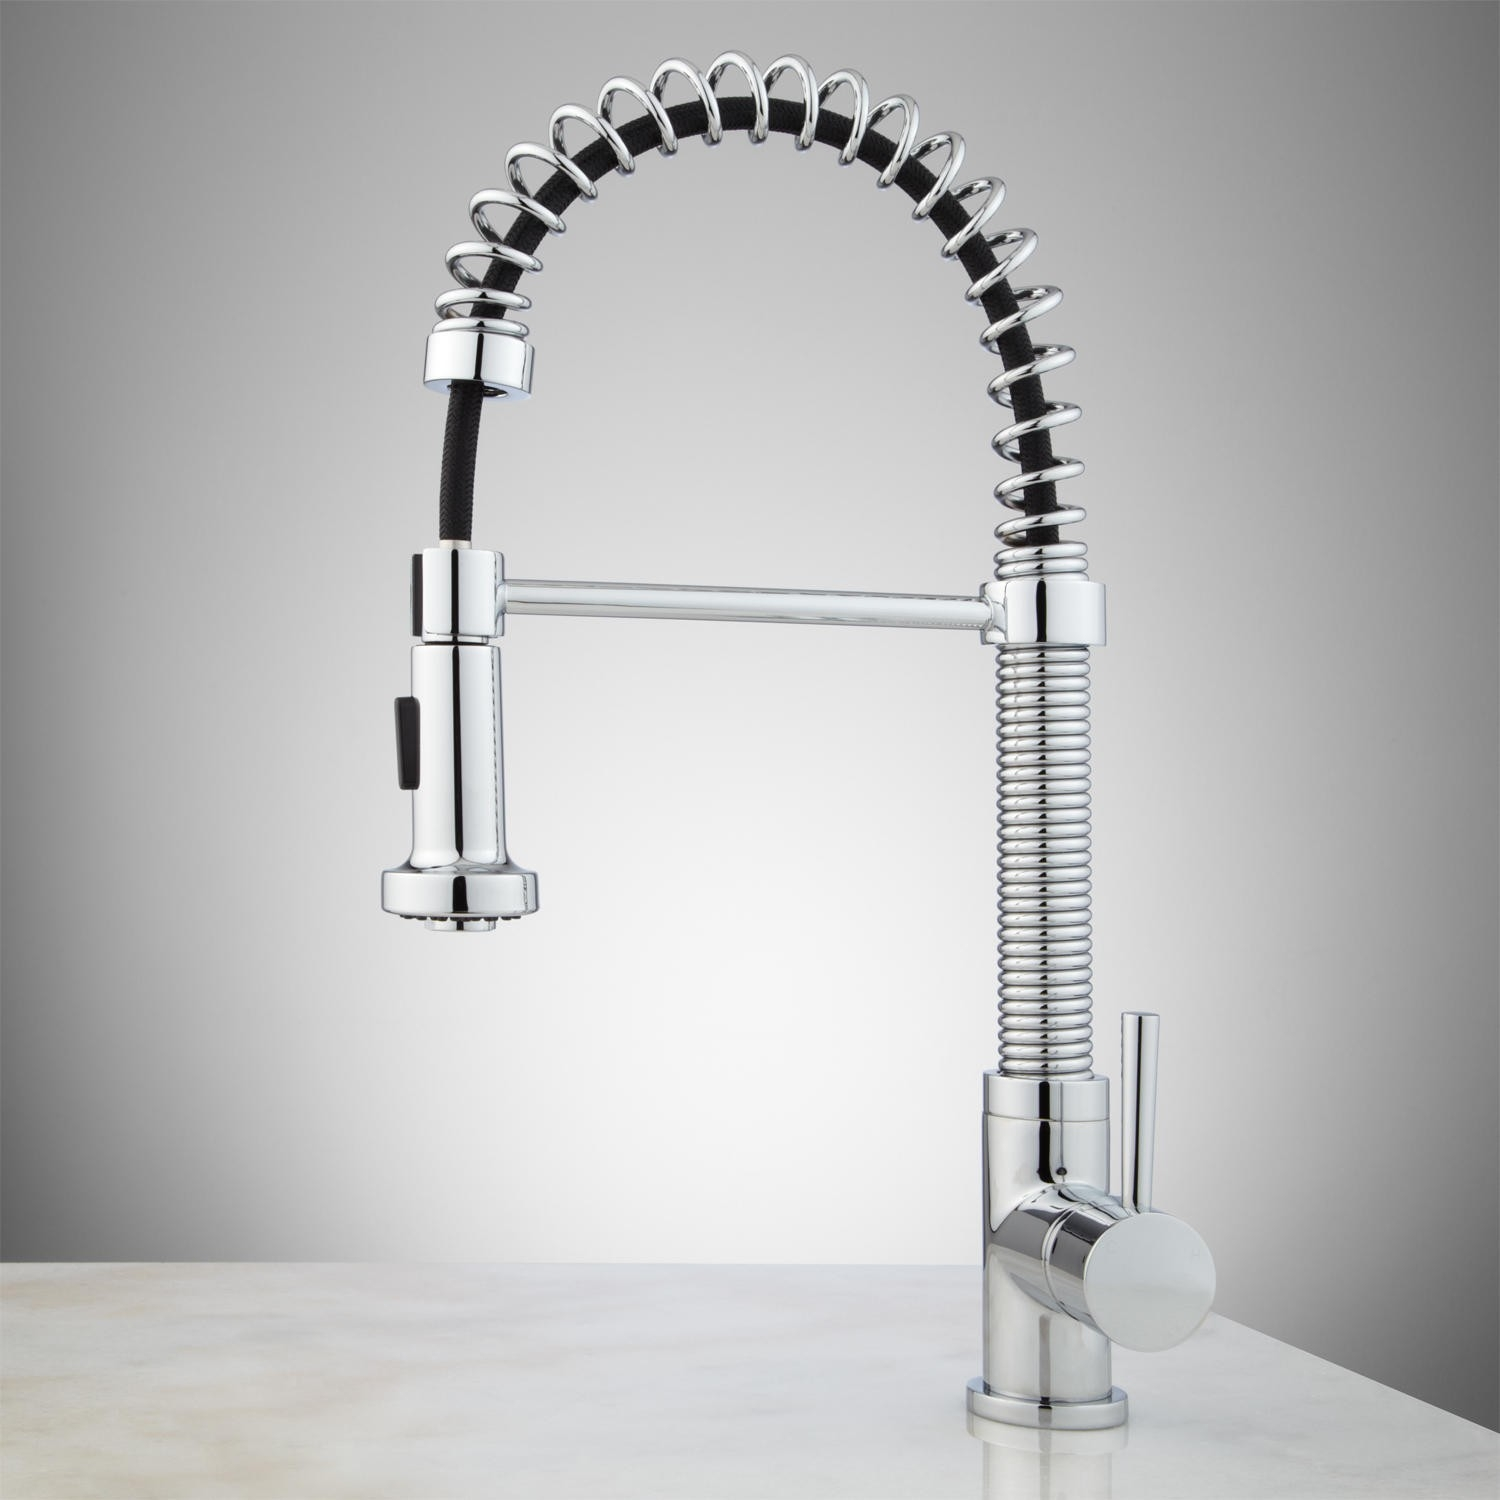 Ideas, best kitchen faucets pull out spray creative restaurant bedroom pertaining to size 1500 x 1500  .